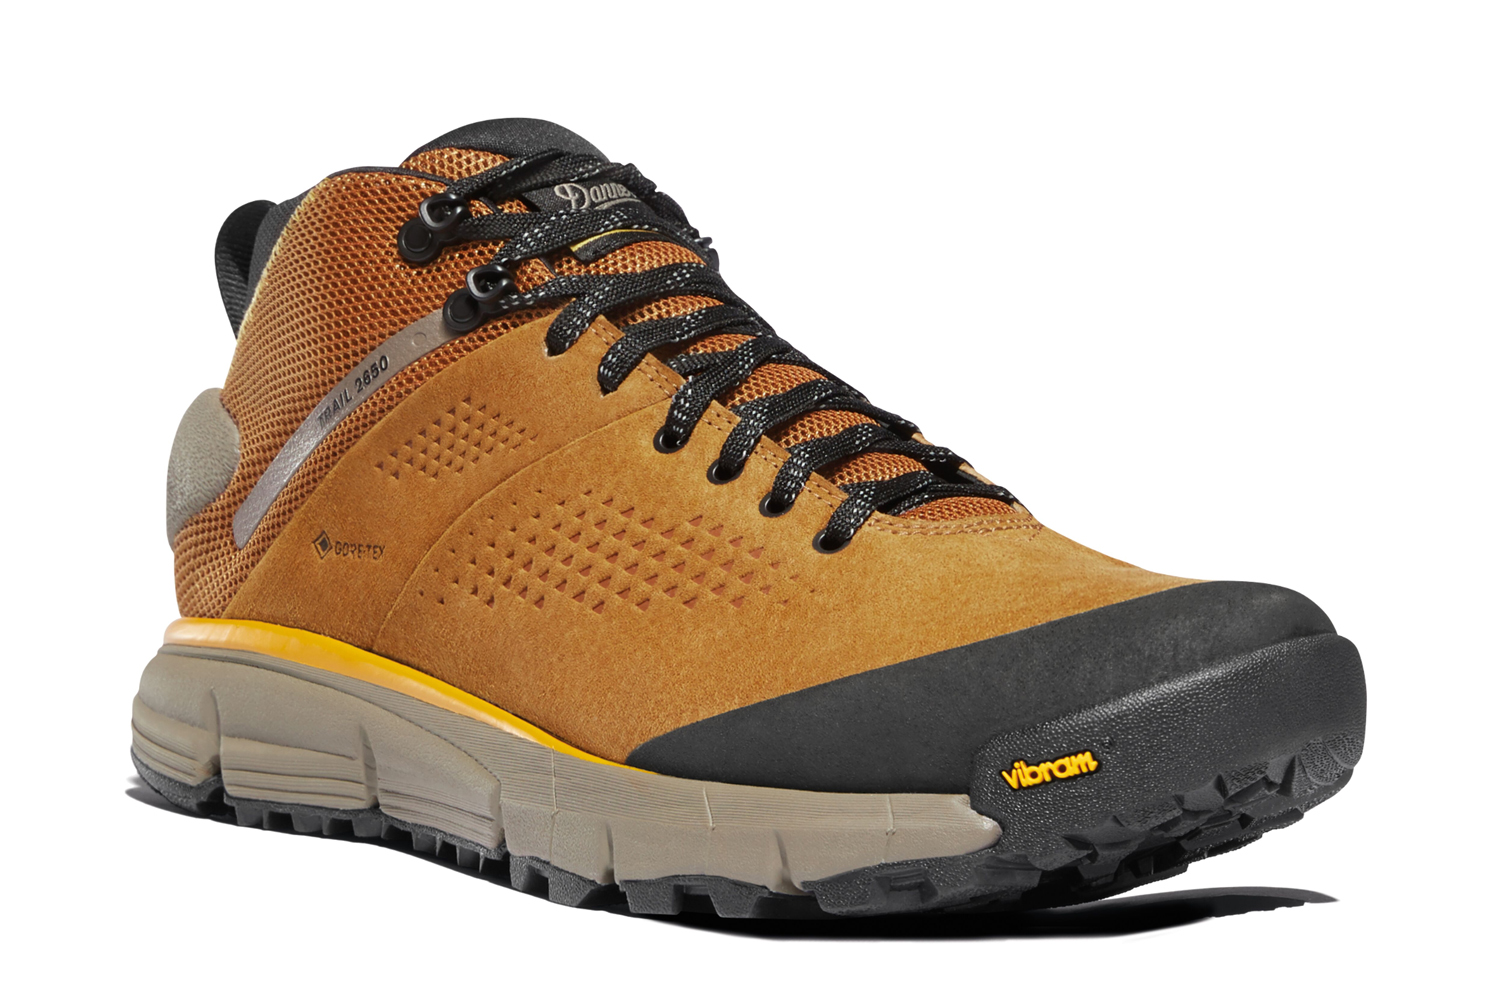 Danner Trail 2650 Mid